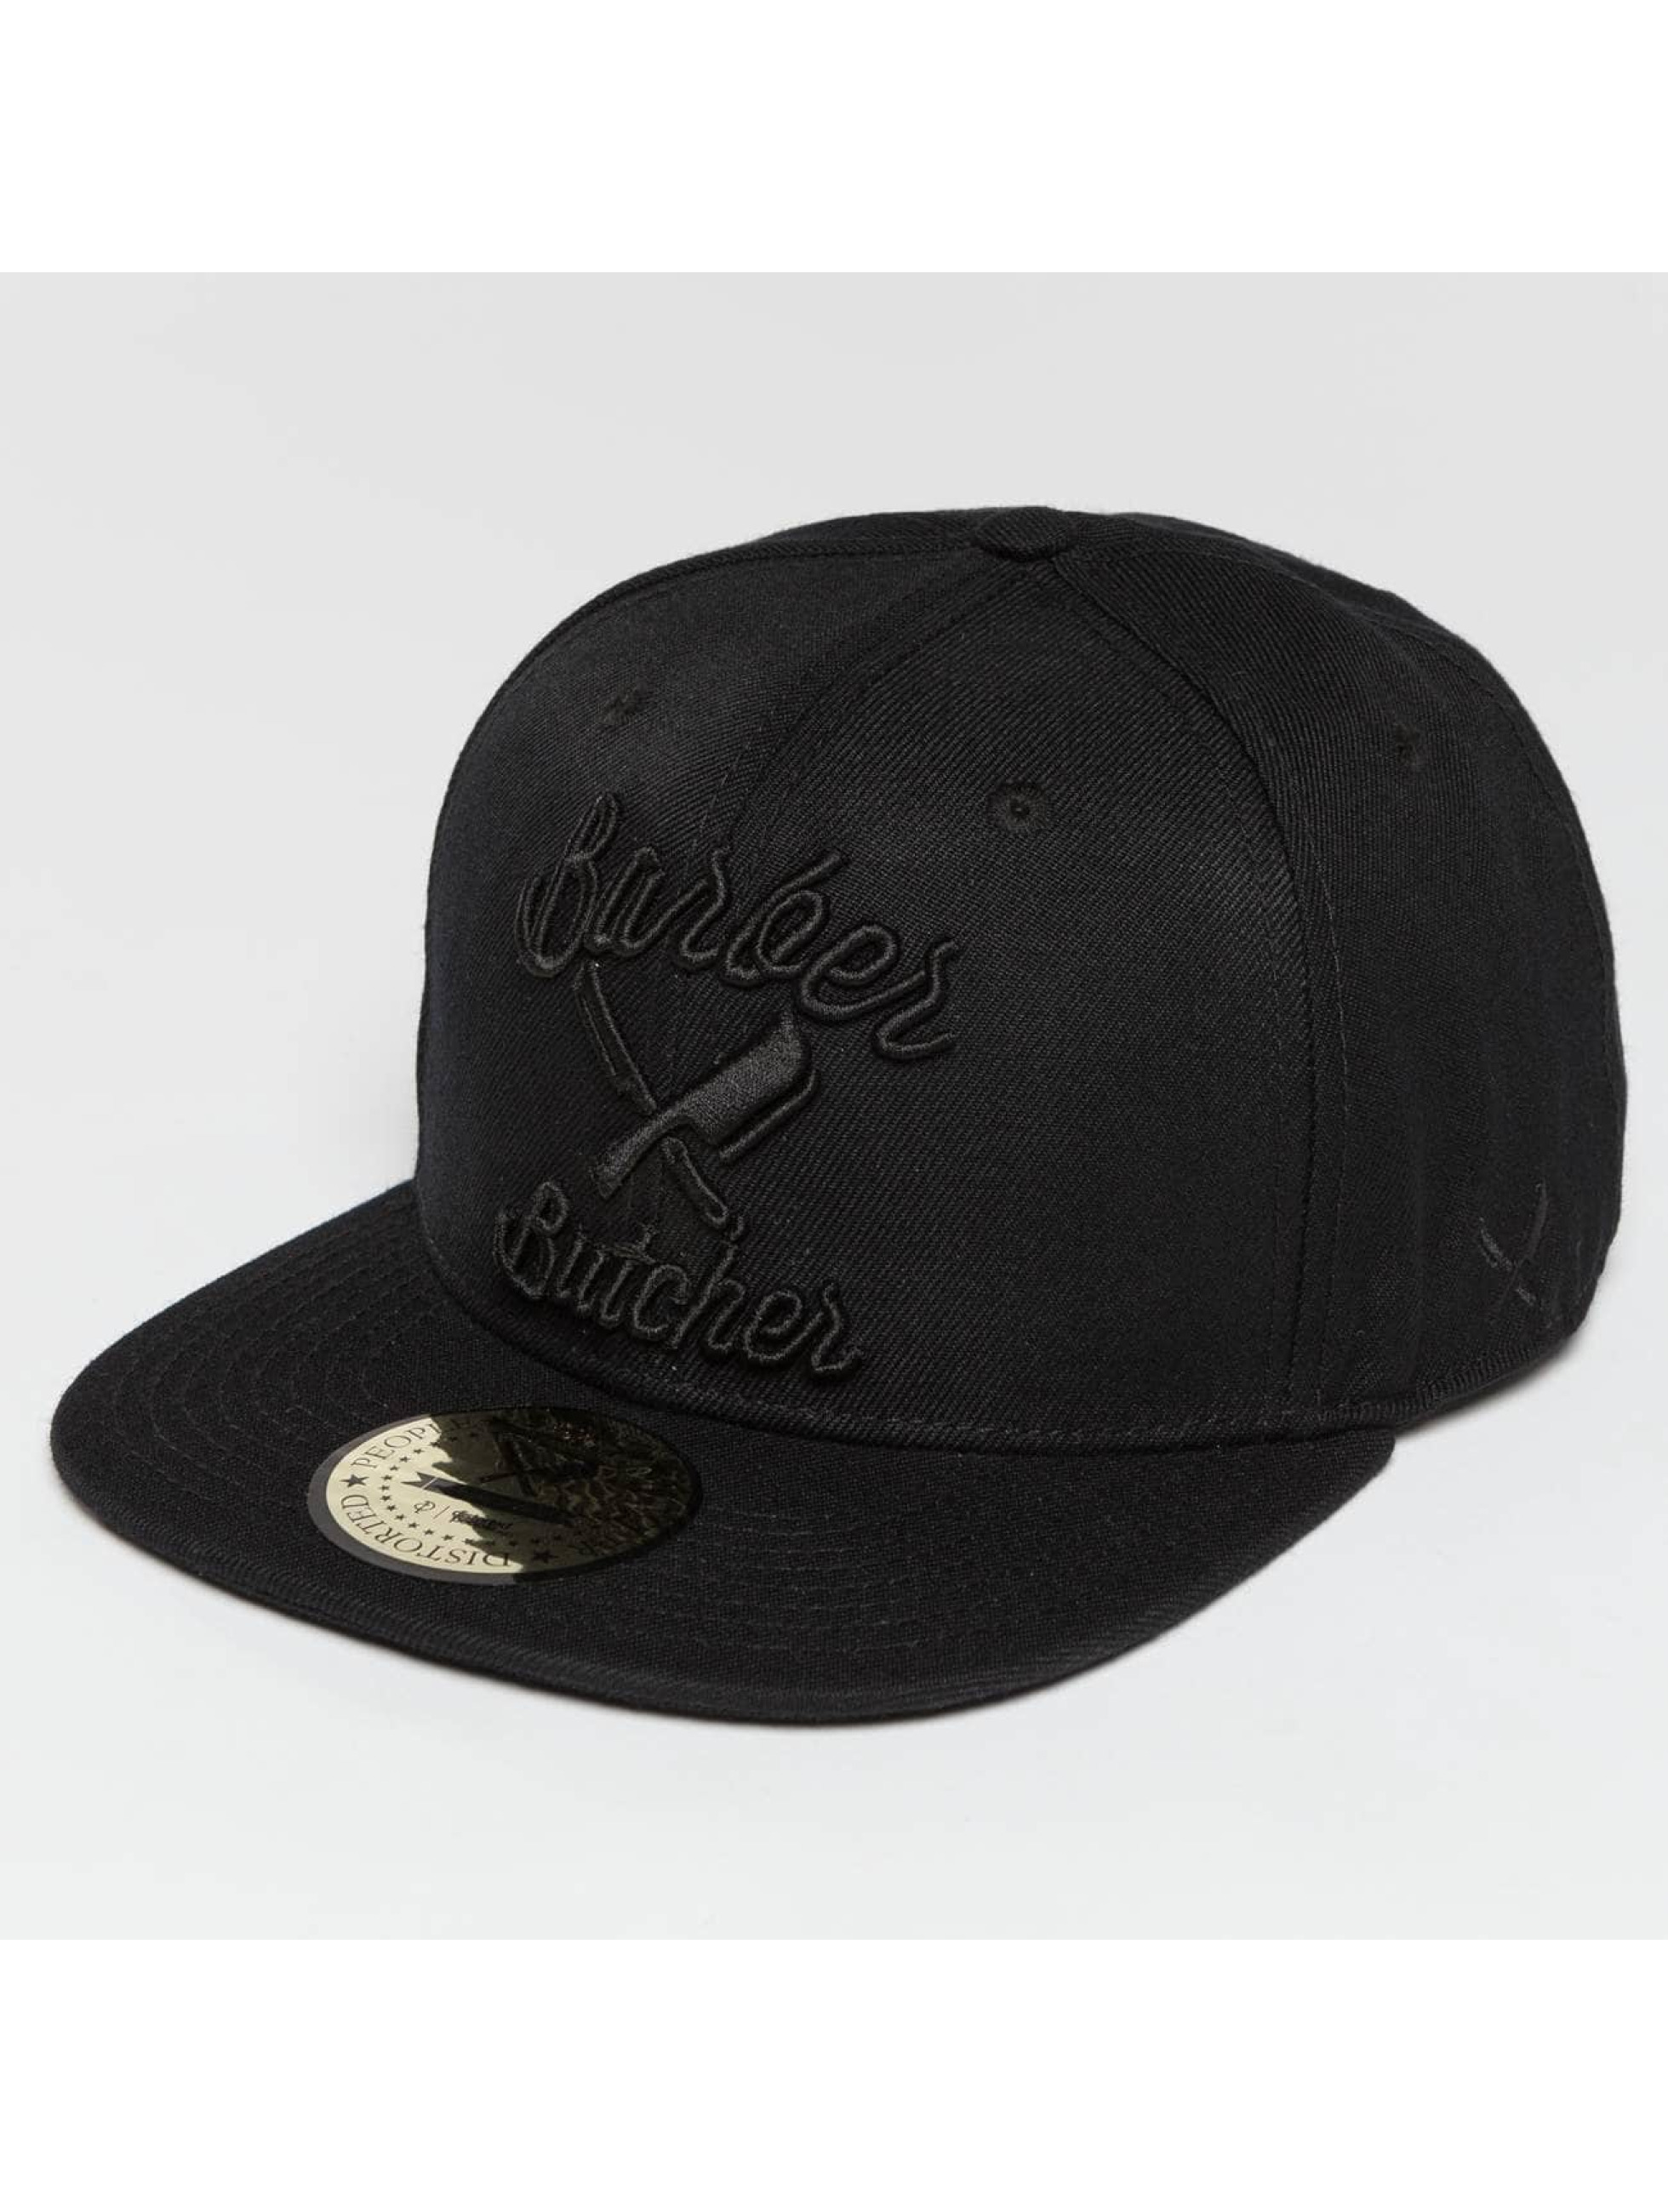 Distorted People Casquette Snapback & Strapback BB Blades noir